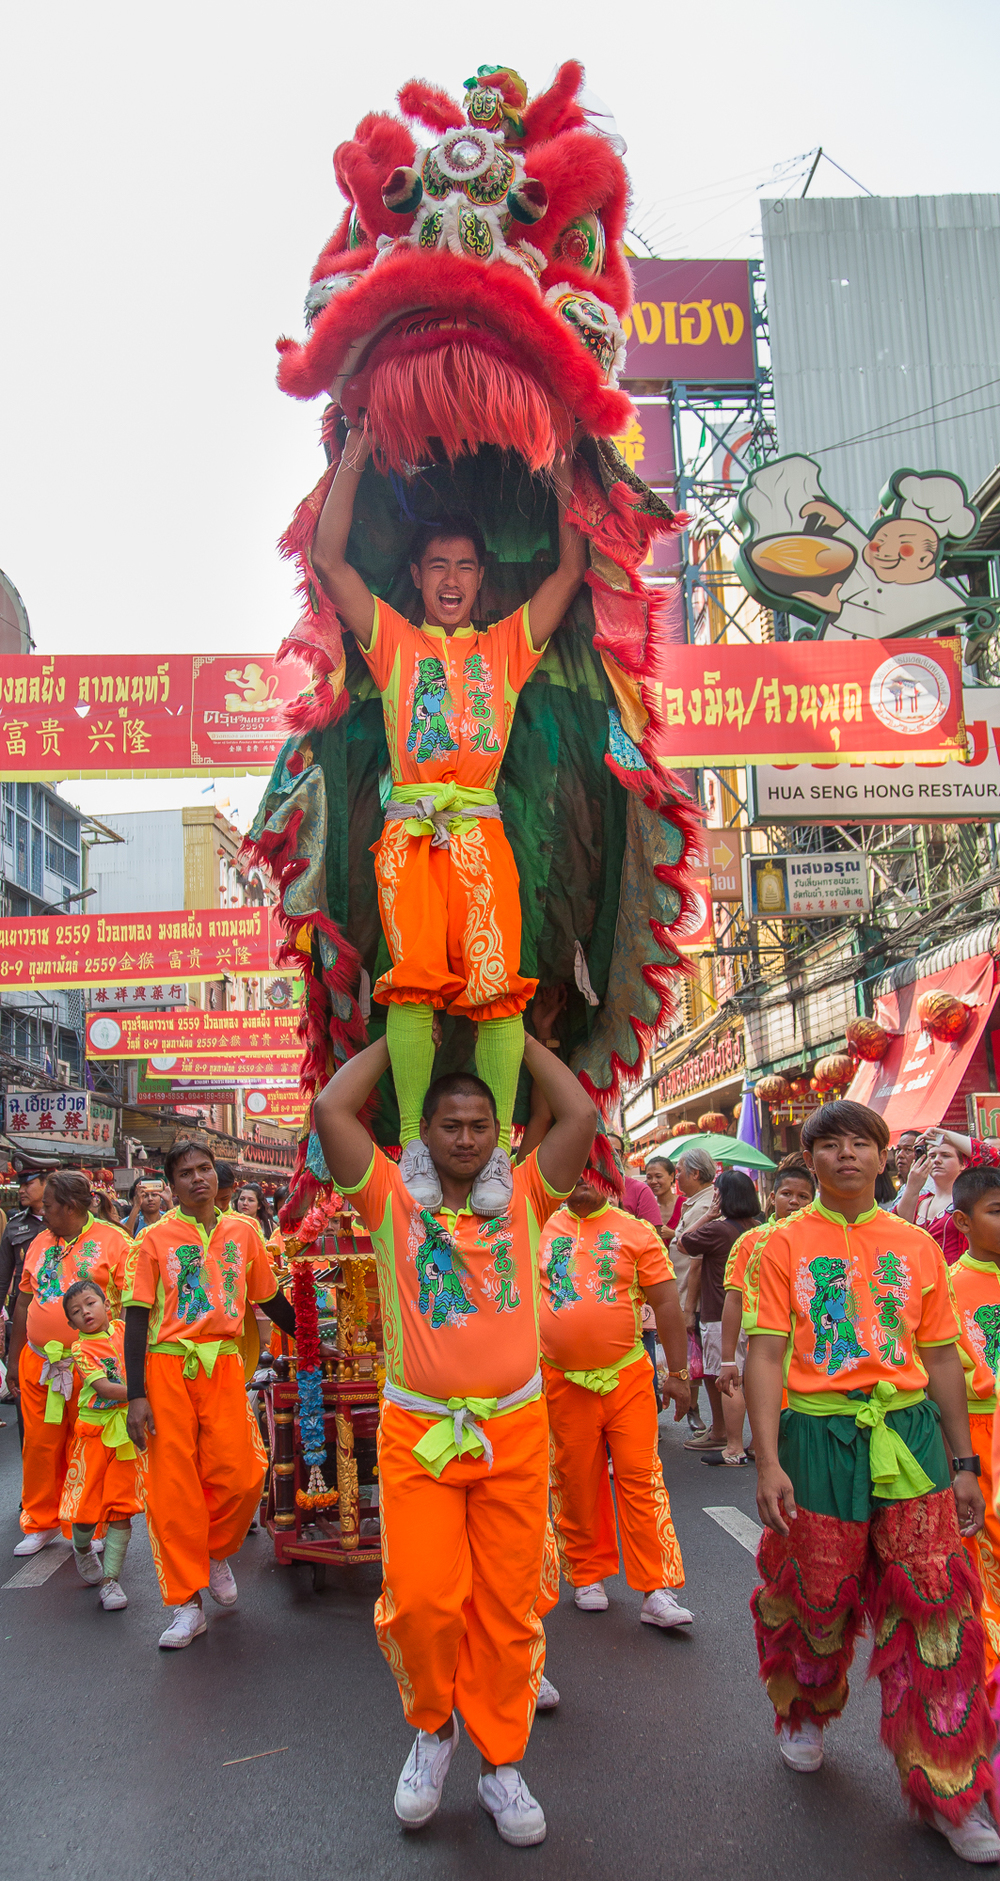 A performer triumphantly holds his costume in the air as he stands on the shoulders of an assistant.